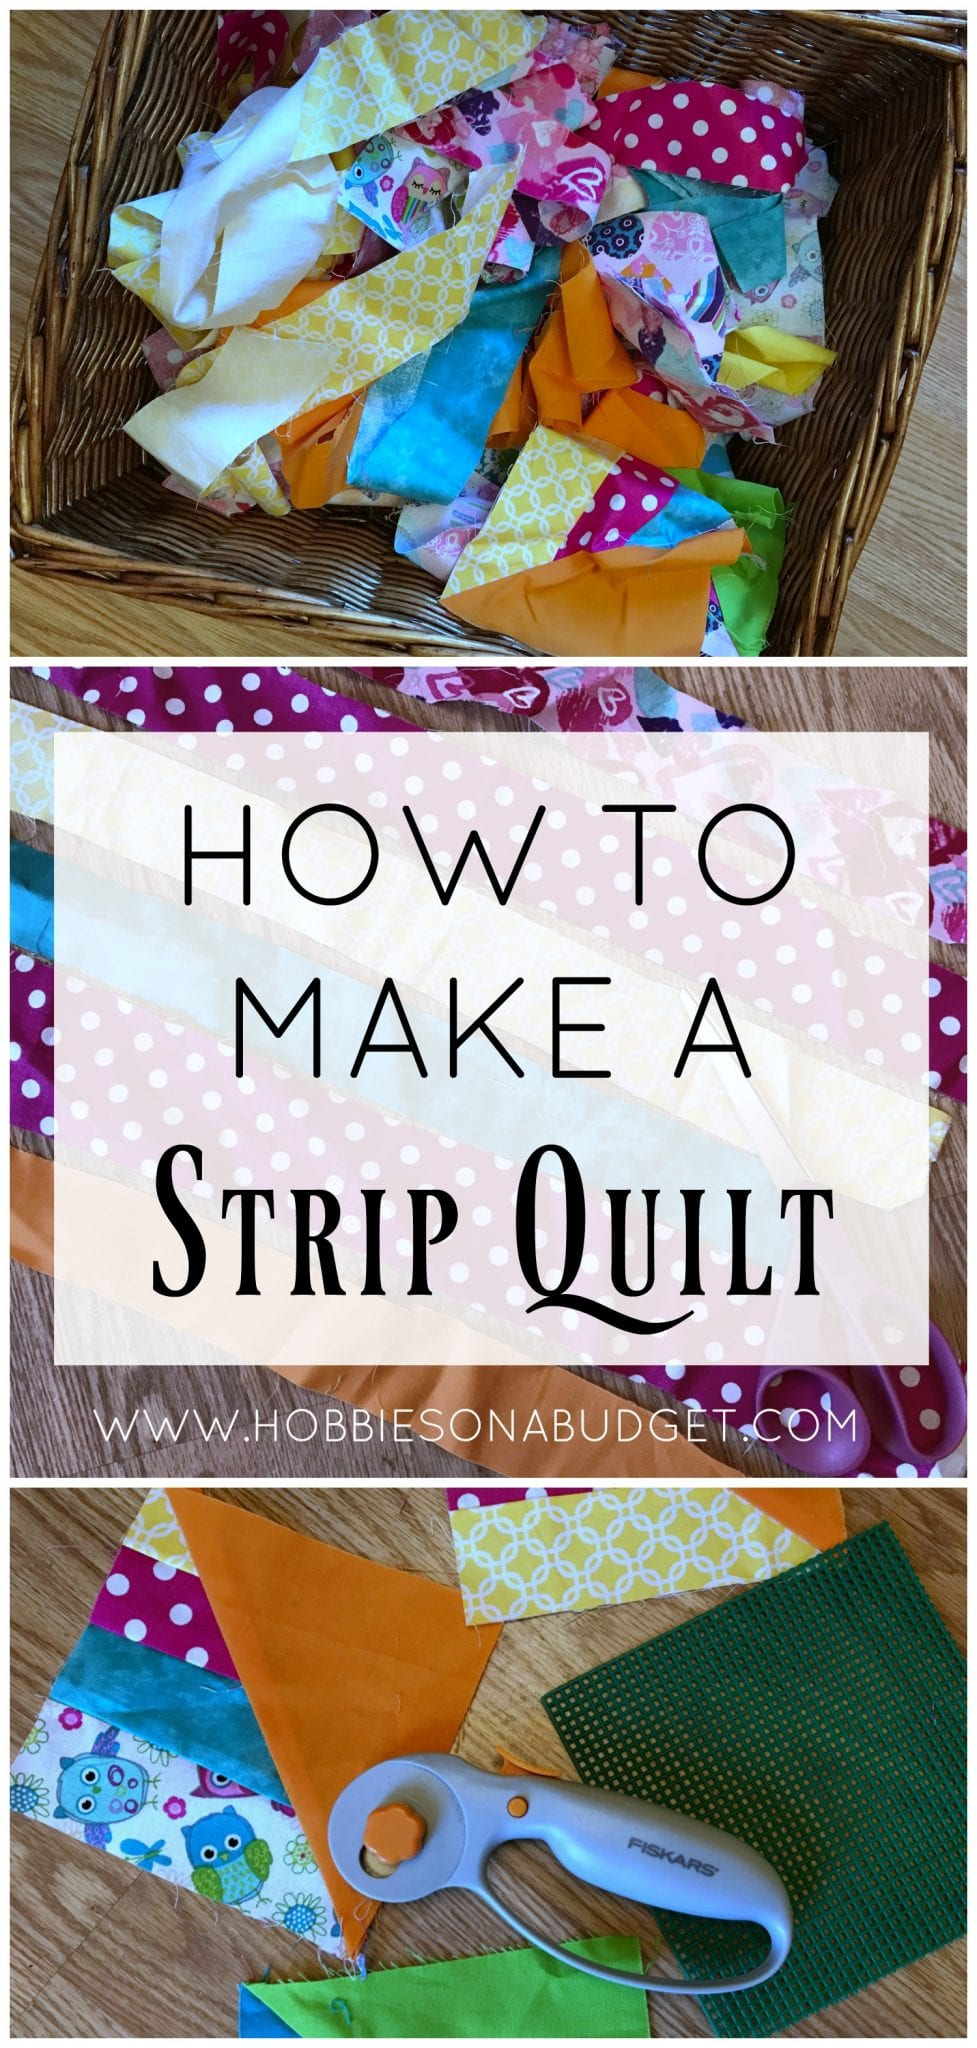 How to make a strip quilt